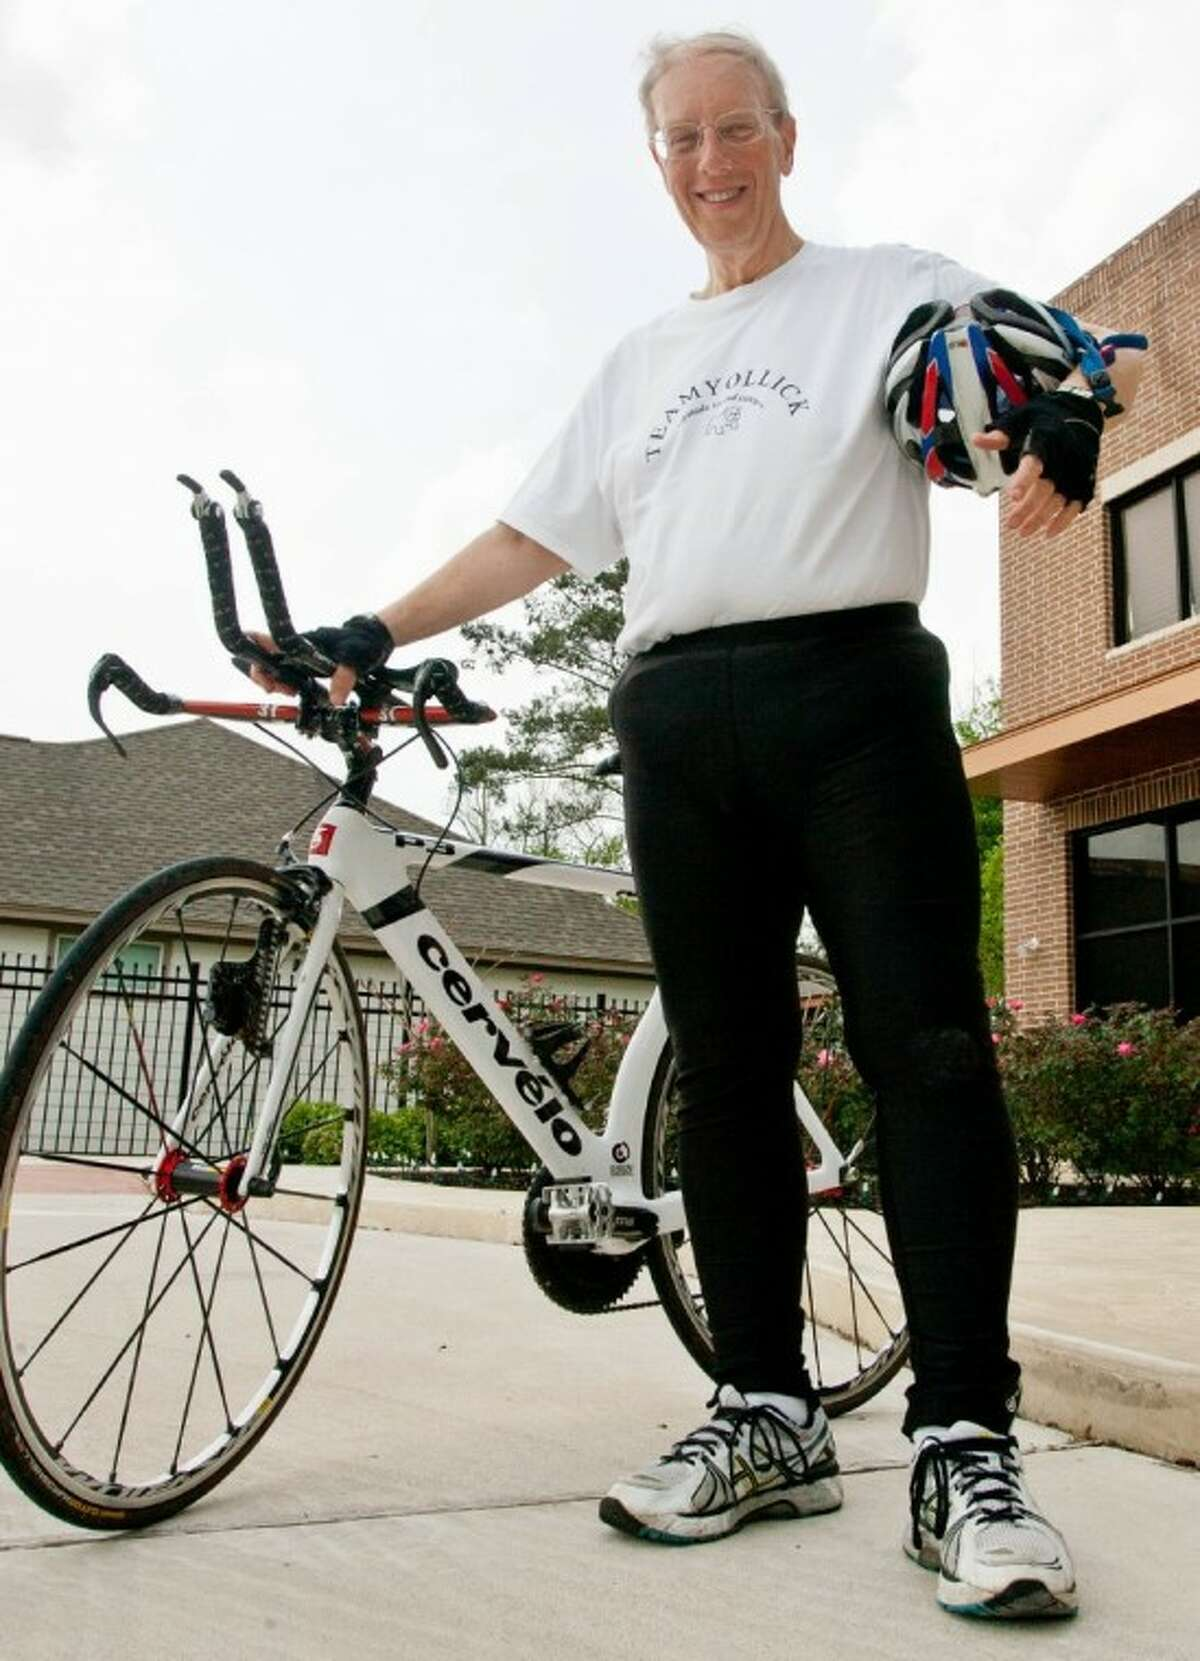 Eric Yollick, of The Woodlands, has lost more than half of his body weight since July 2010.